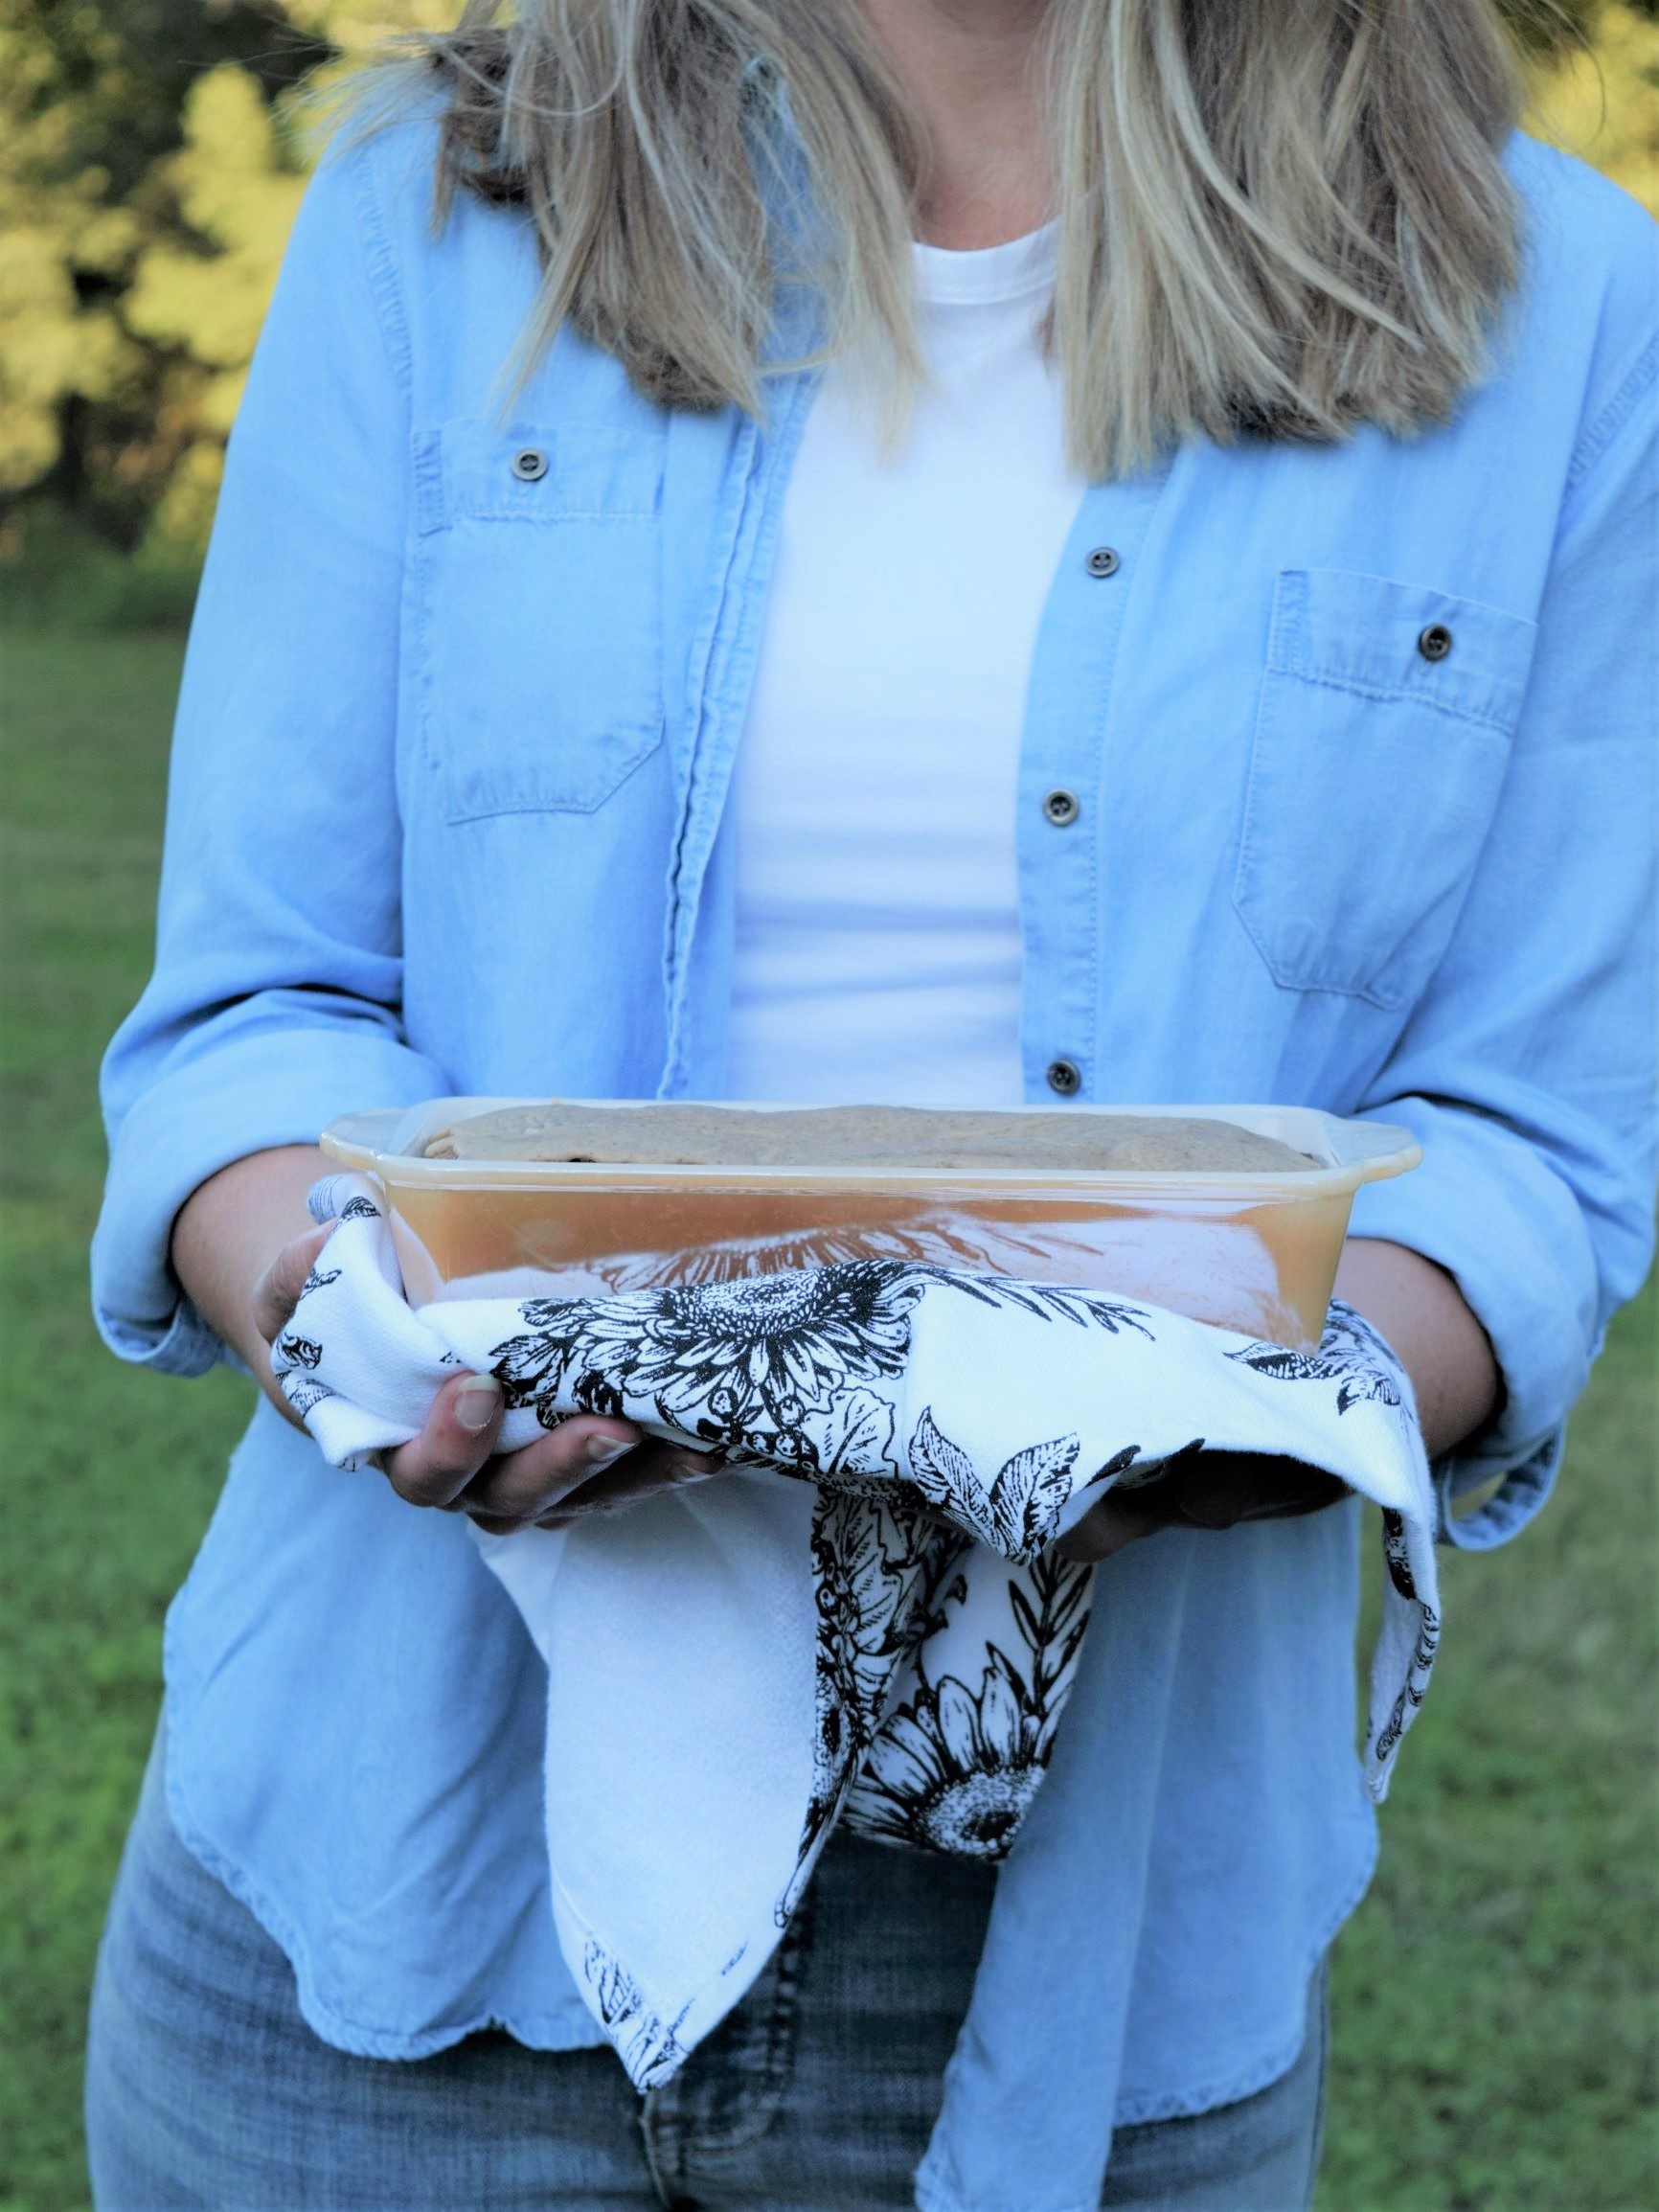 vanilla chai pear bread blue girl holding fire king flower towel blonde chambray moody fall cozy